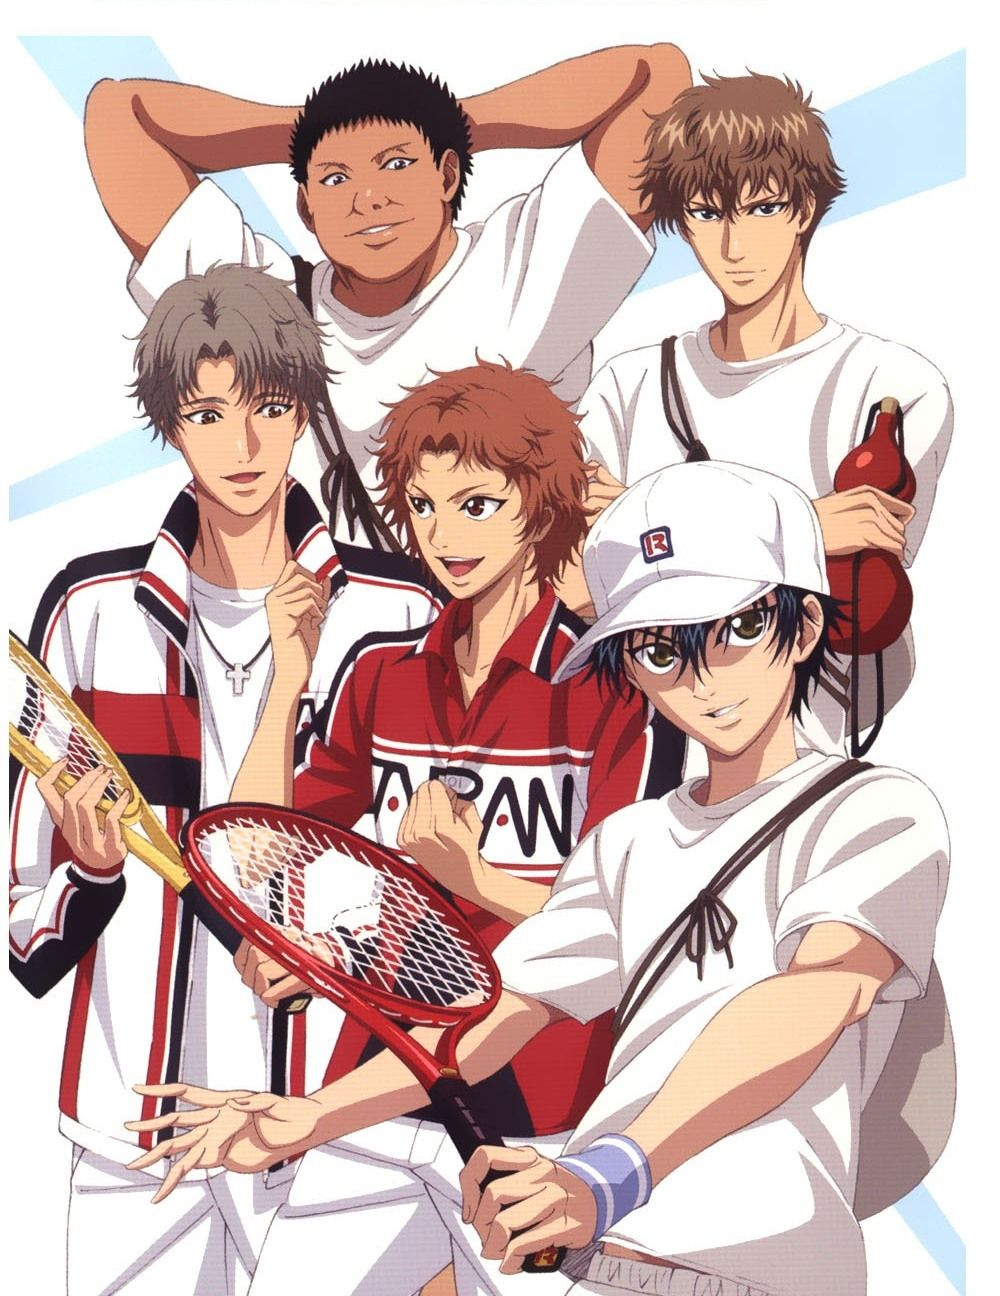 Tags Tennis No Ouji Sama Akutagawa Jiro Echizen Ryoma Ootori Choutarou Oshitari Kenya Official A Prince Of Tennis Anime Anime Prince The Prince Of Tennis